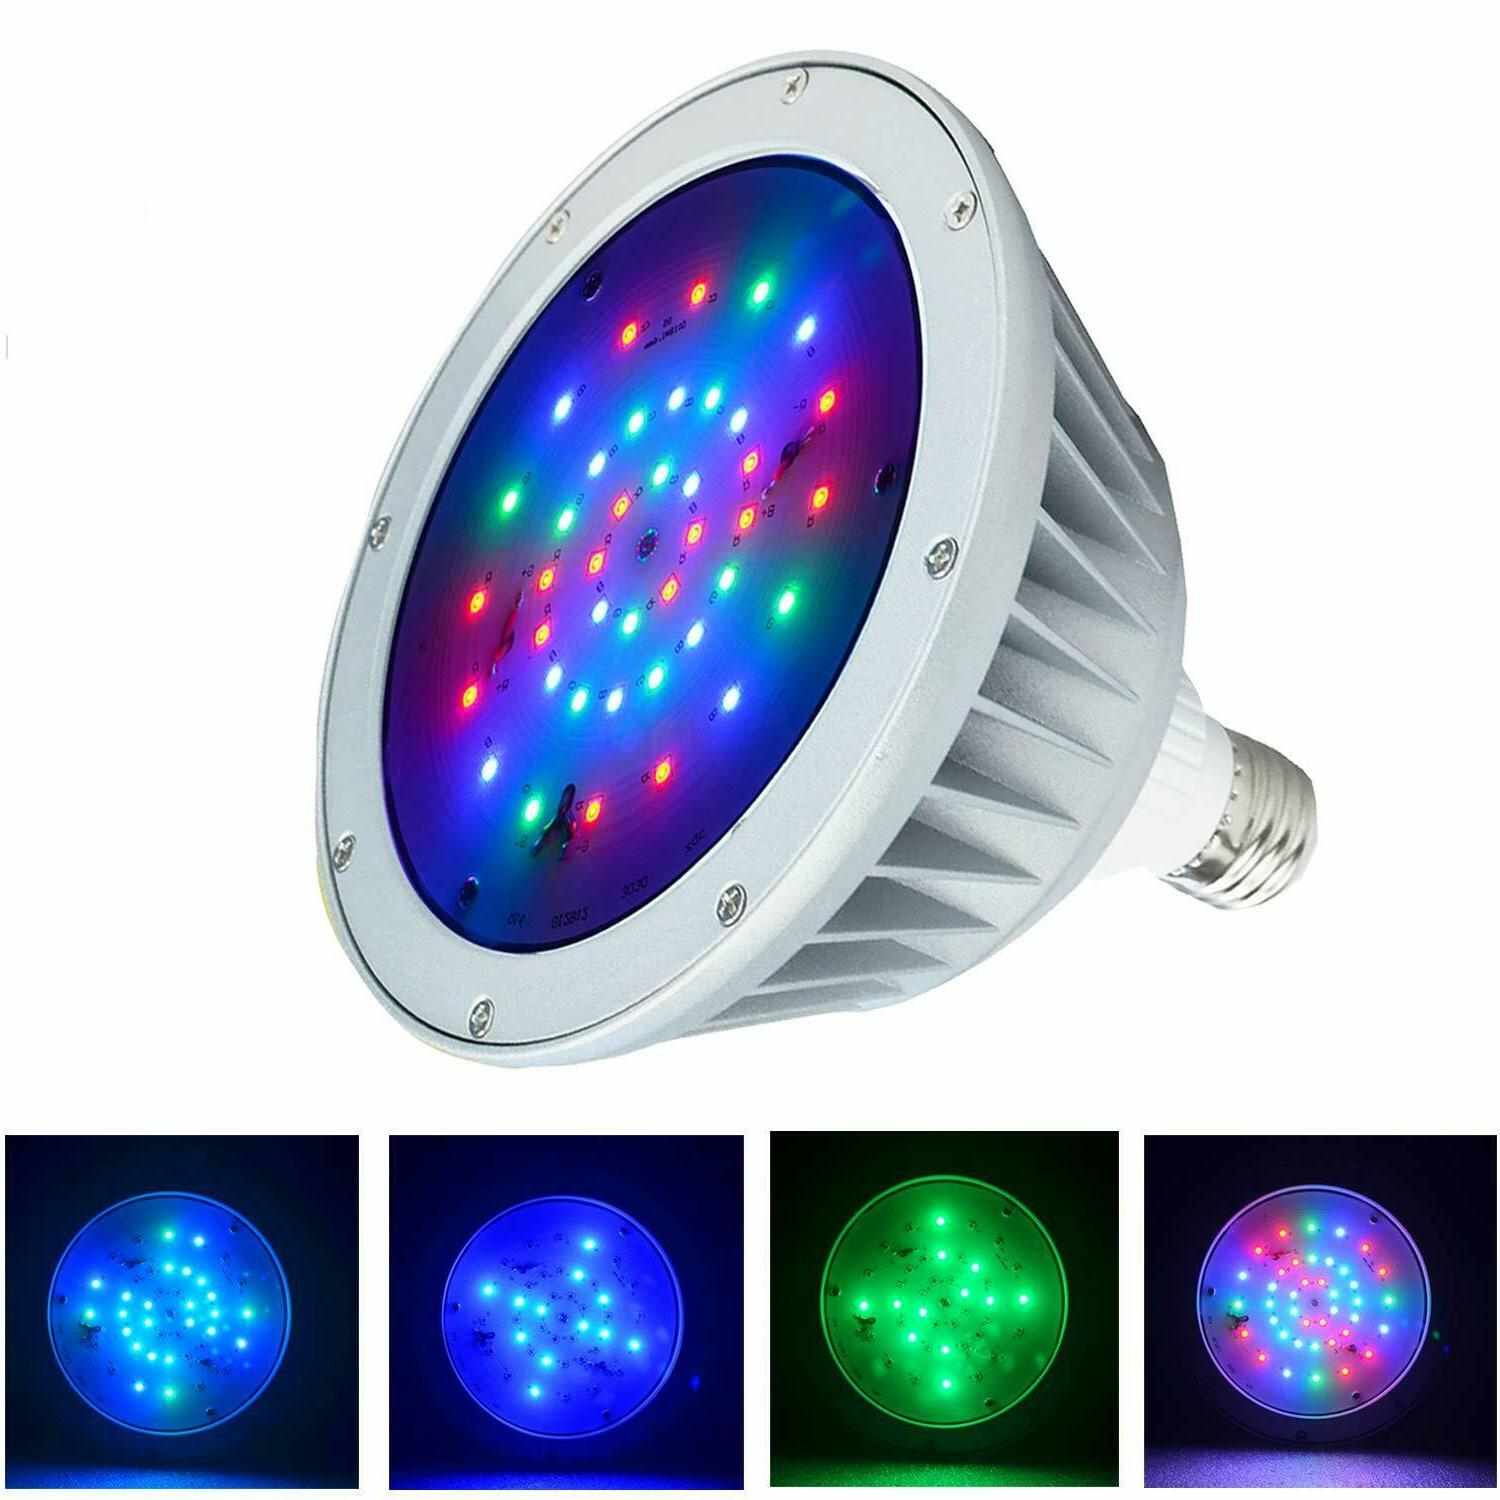 12v 40w led color change replace swimming